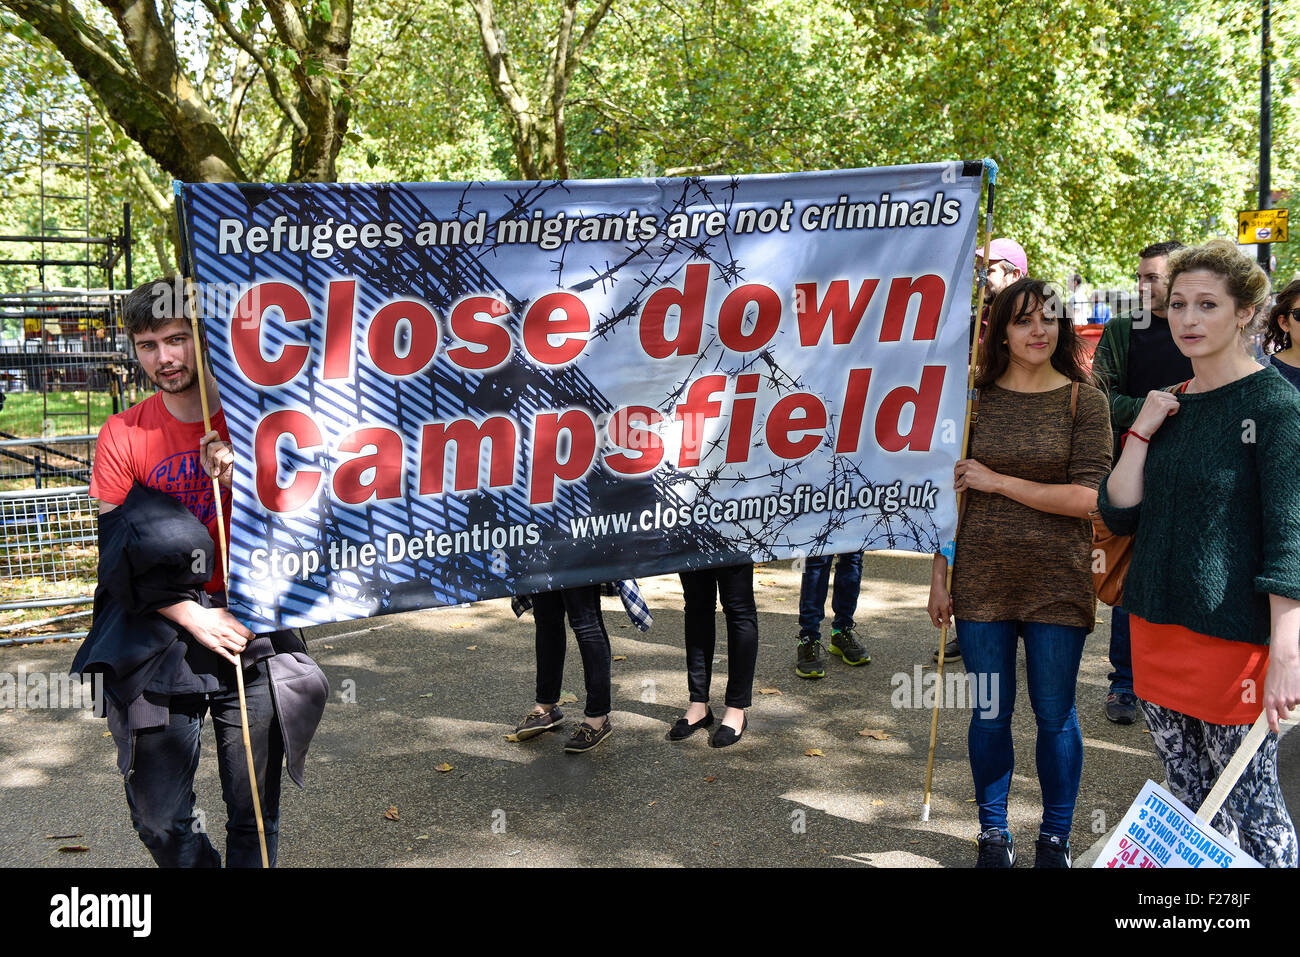 A demonstrators holding a banner demanding the closure of Campsfield Detention Centre. - Stock Image